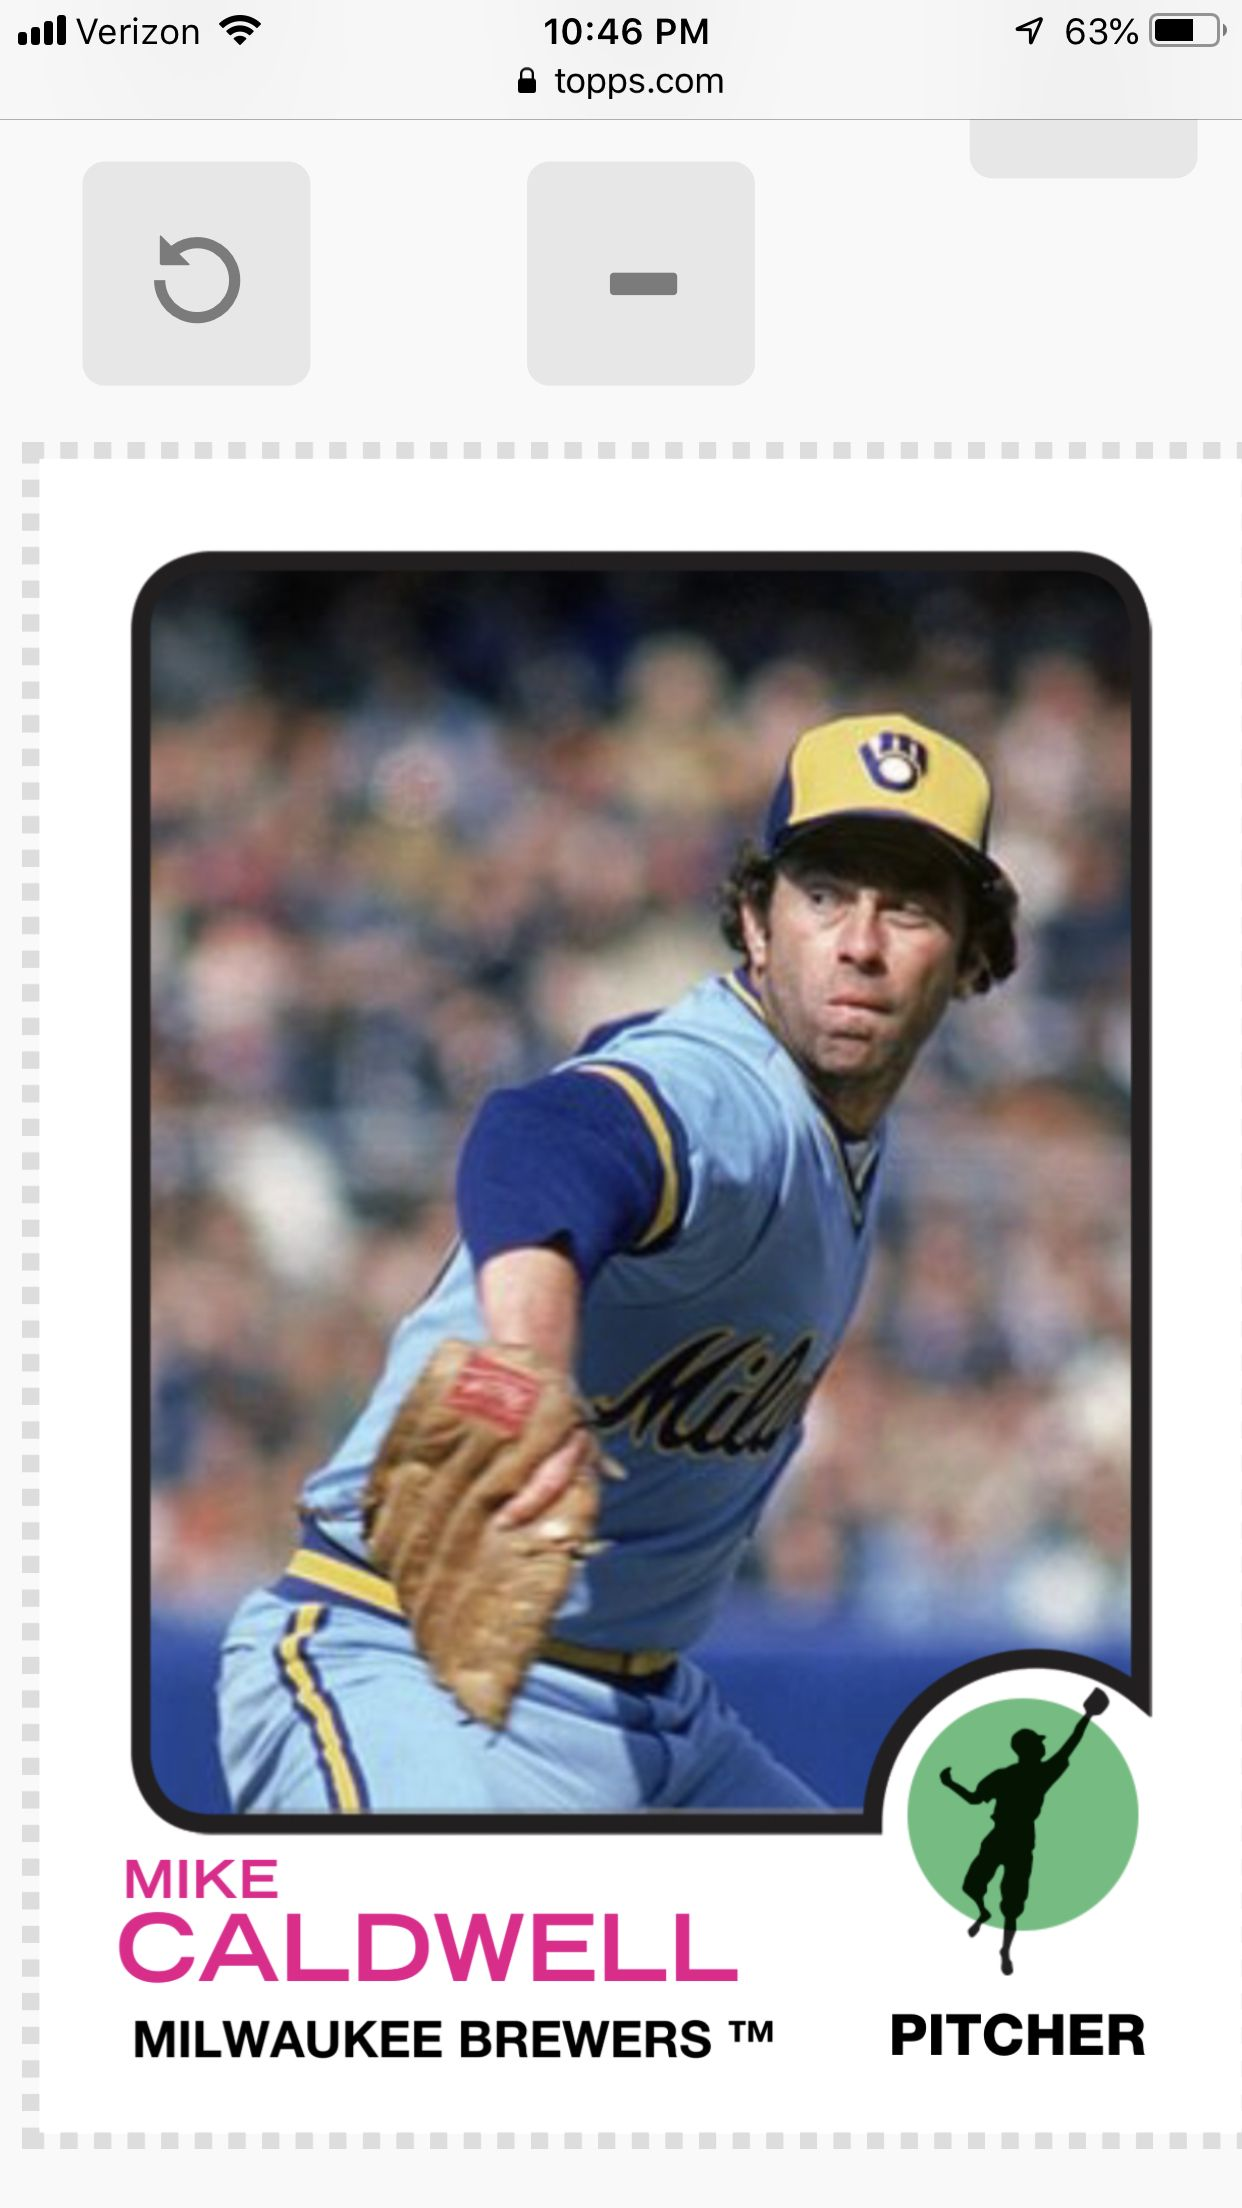 Pin By Dave Mersino On Brewers Road Baseball Cards Milwaukee Brewers Baseball